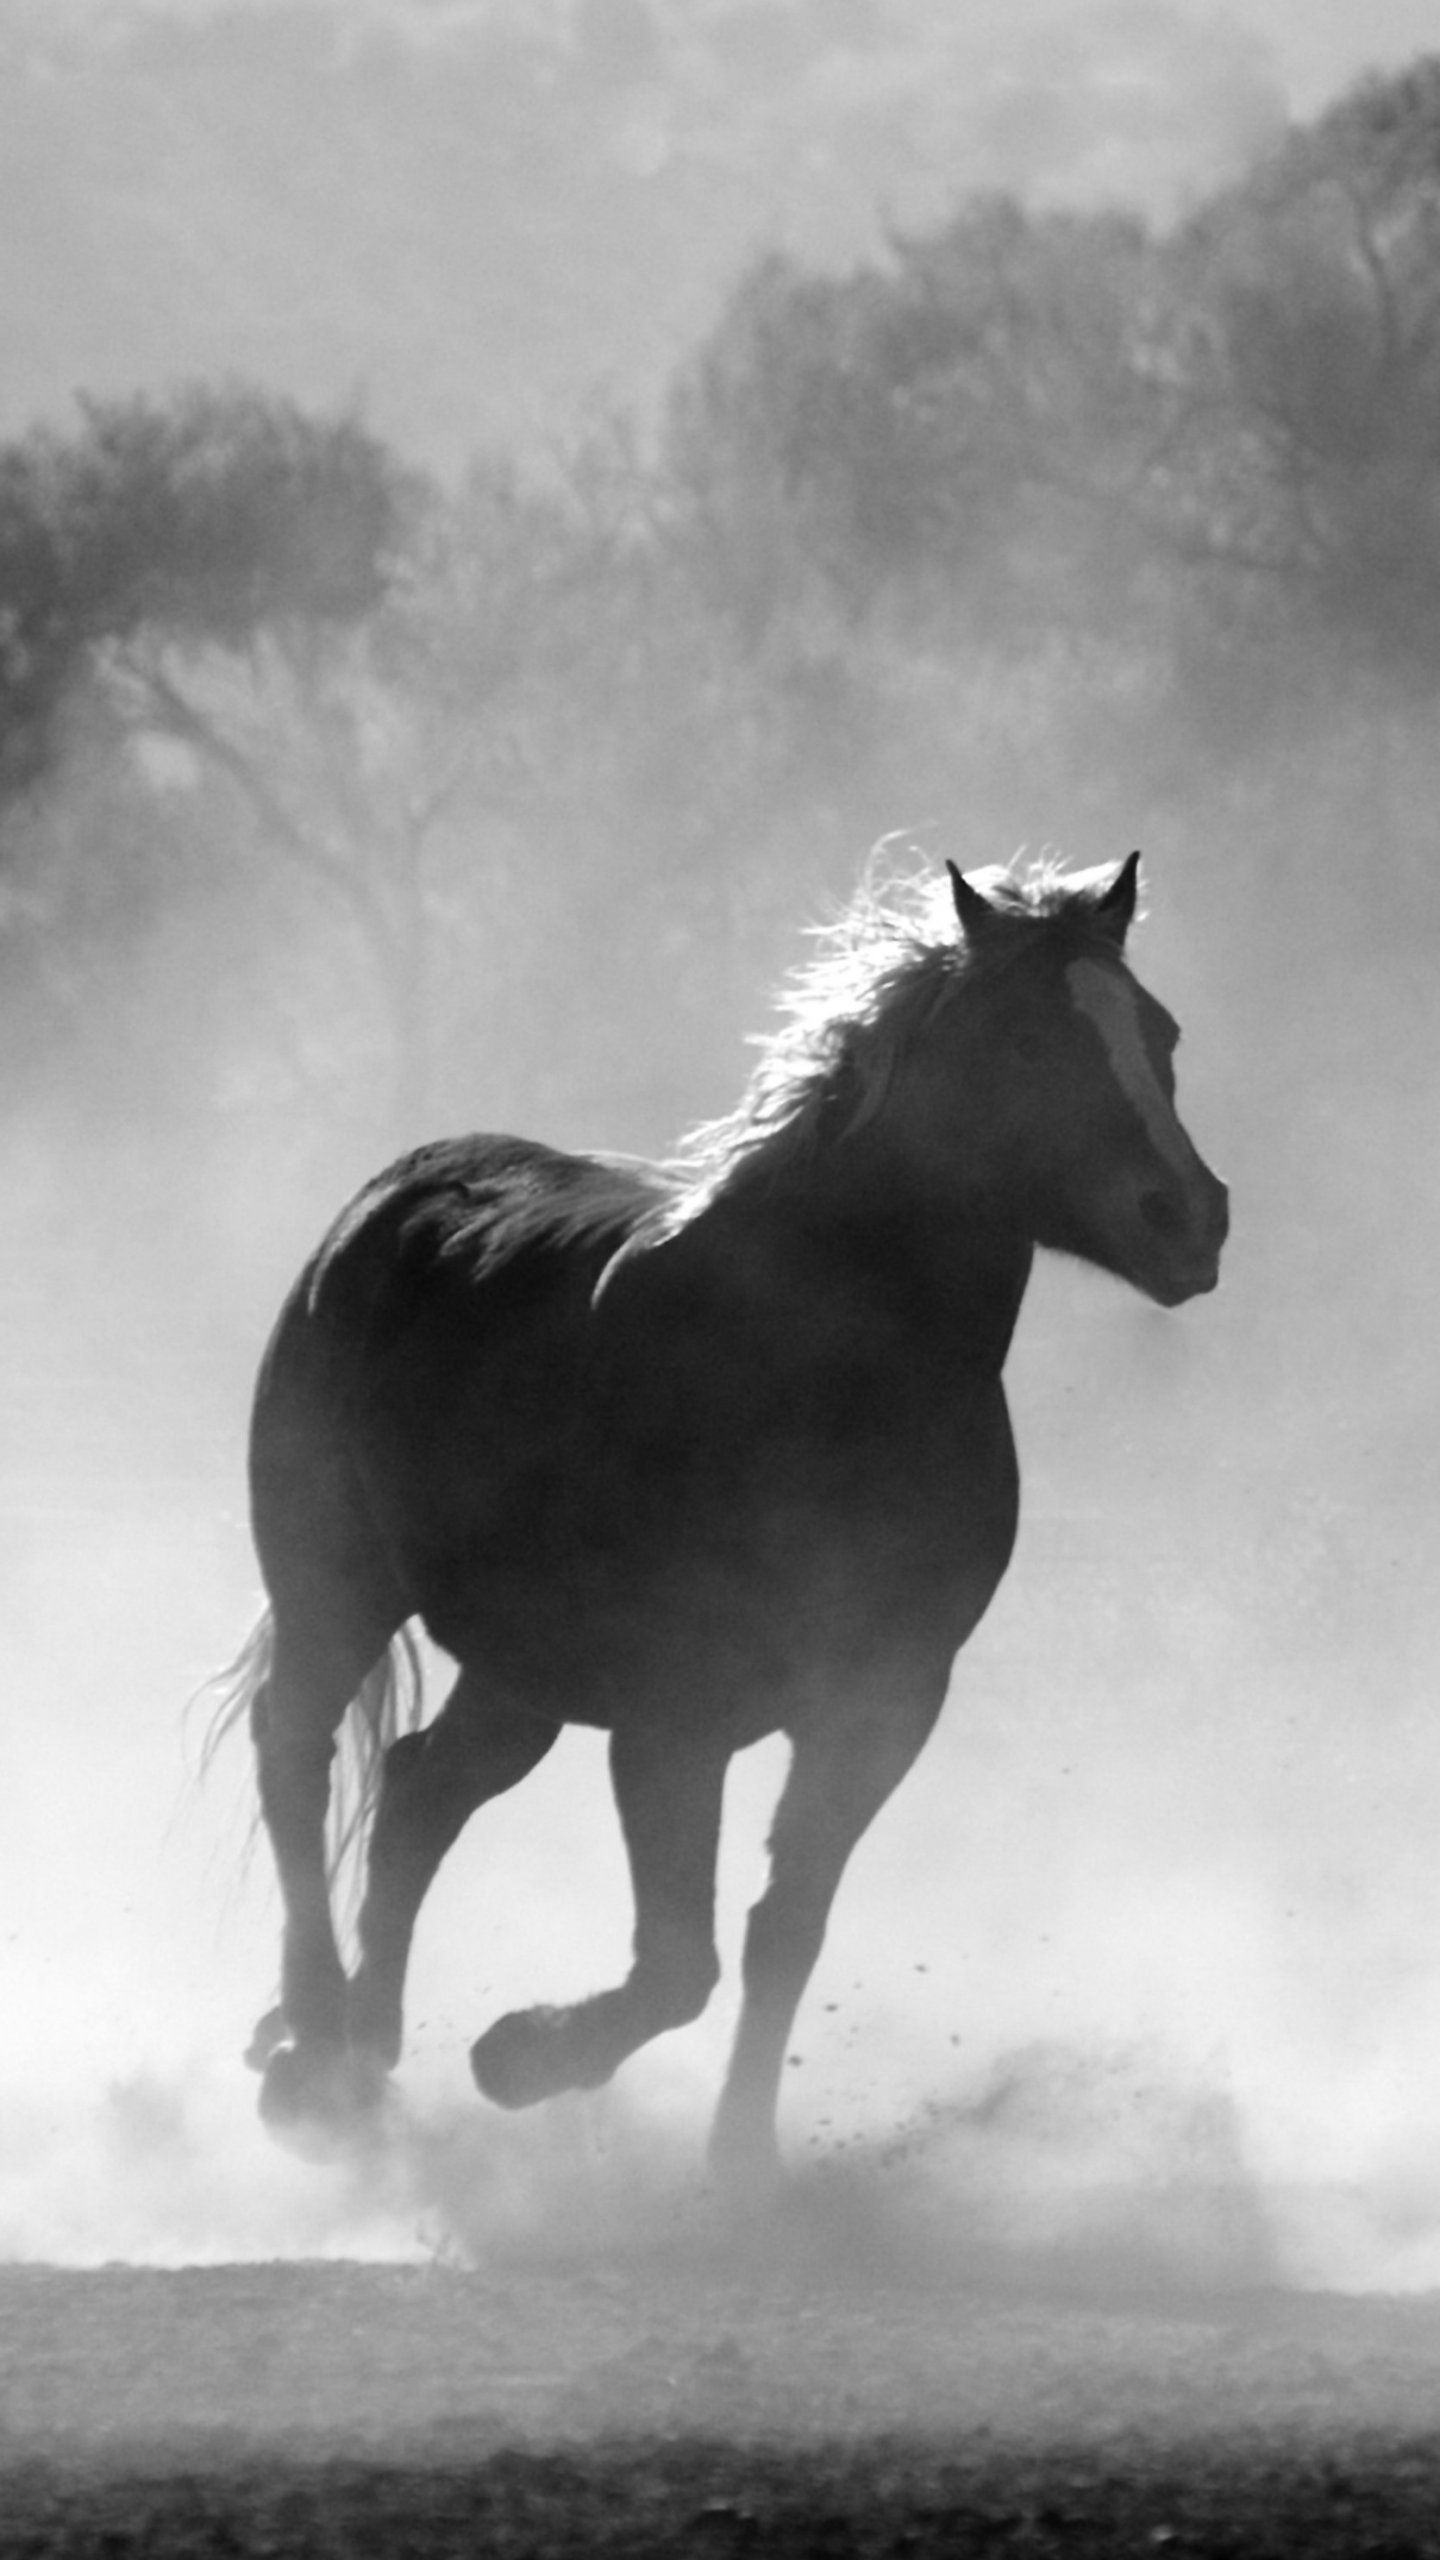 Horses In The Mist Wallpaper Iphone Android Desktop Backgrounds Horse Wallpaper Horses Animals